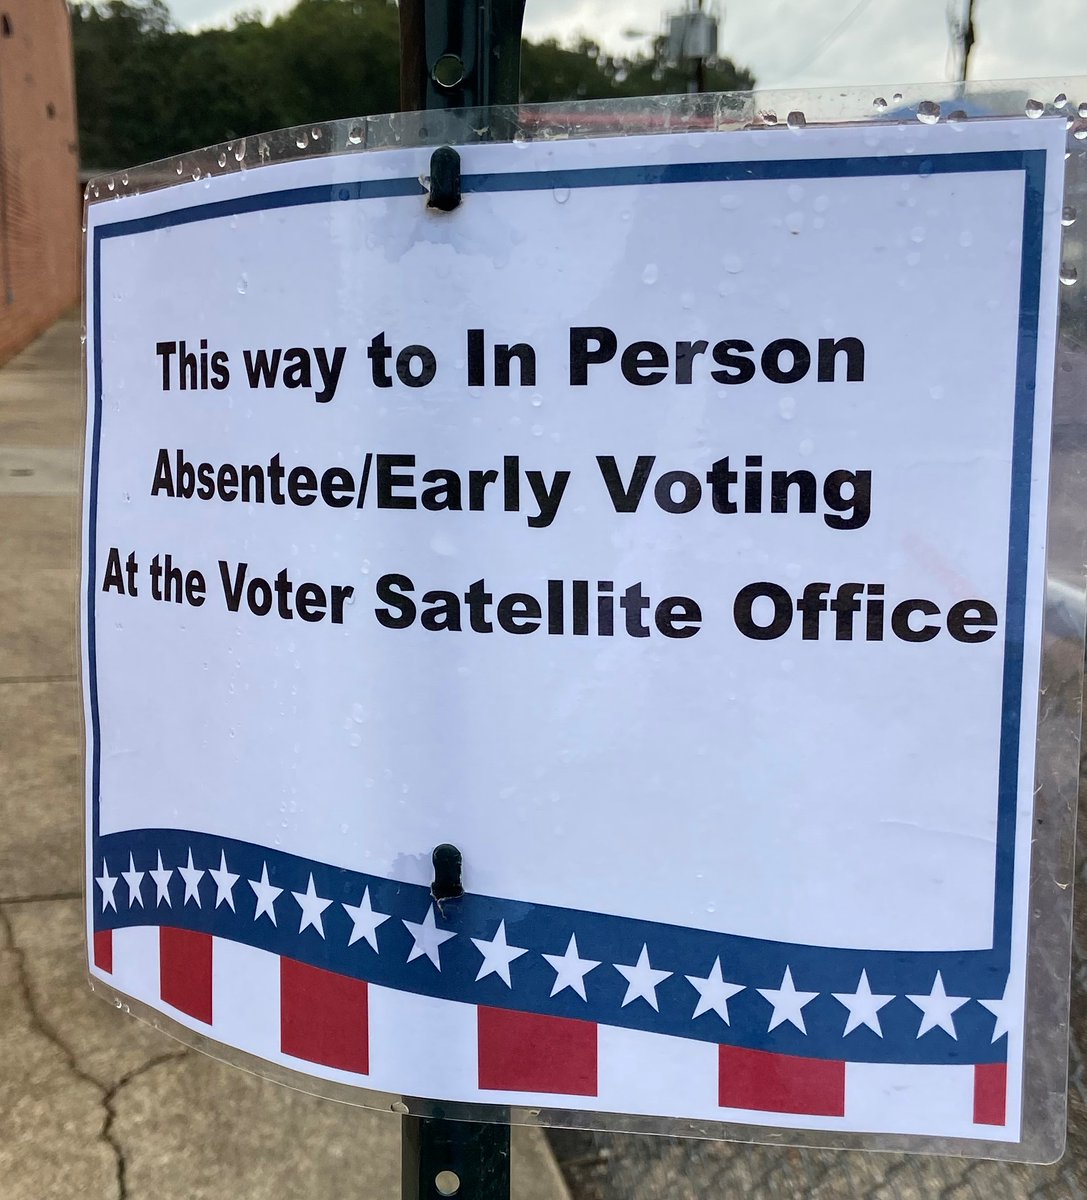 In Person Absentee/Early Voting began in #GoochlandCounty on Friday, Sept. 18th.    A Voter Satellite Office is located in Parks & Recreation's Goochland Sports Complex (1800 Sandy Hook Rd) to handle in-person absentee early voting. For more info visit: